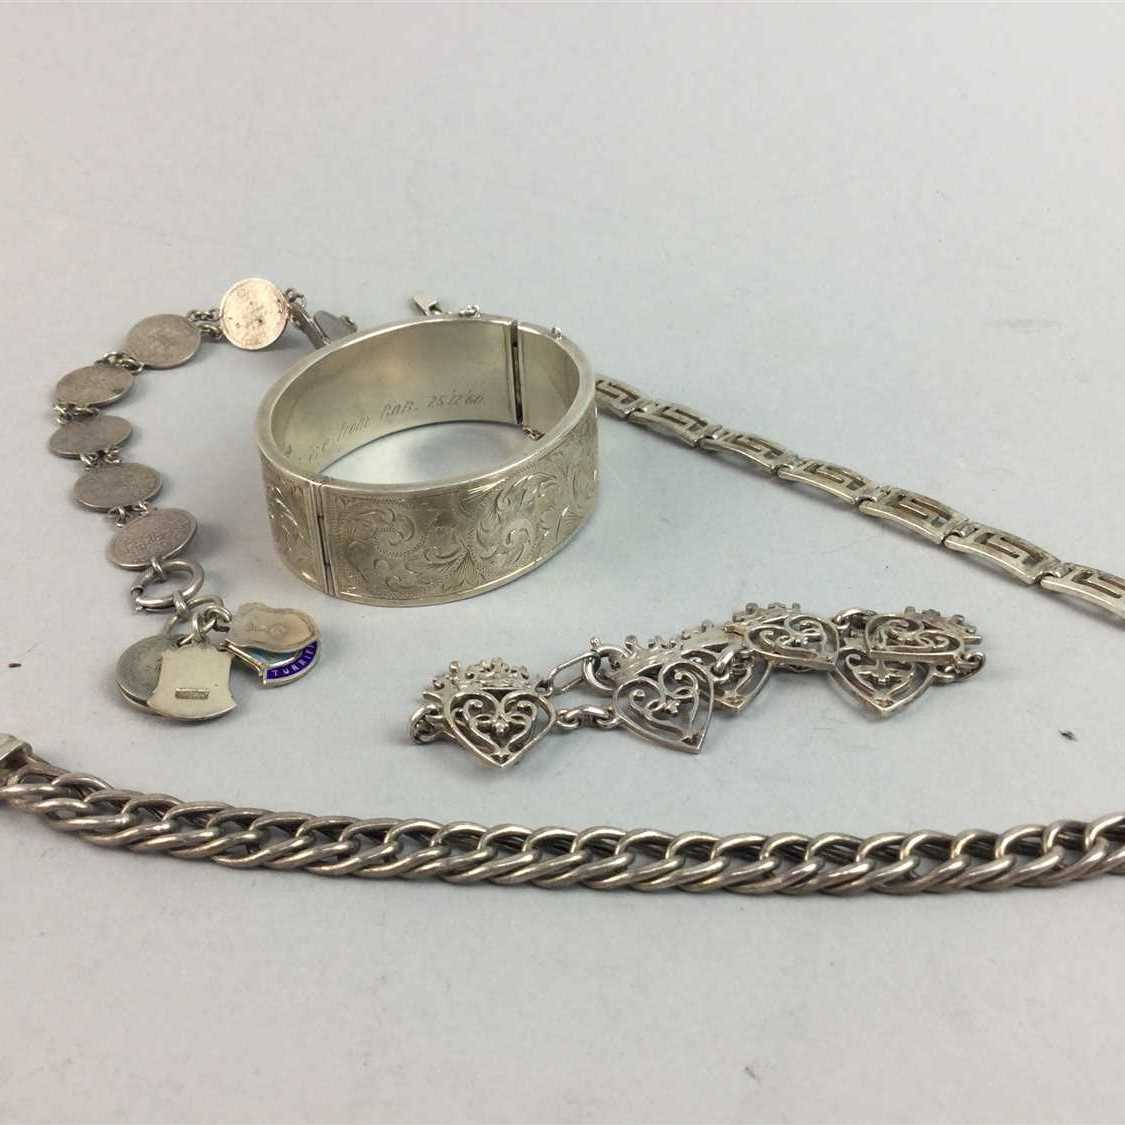 Lot 3-A JOHN HART LUCKENBOOTH IONA SILVER BRACELET AND OTHER SILVER JEWELLERY